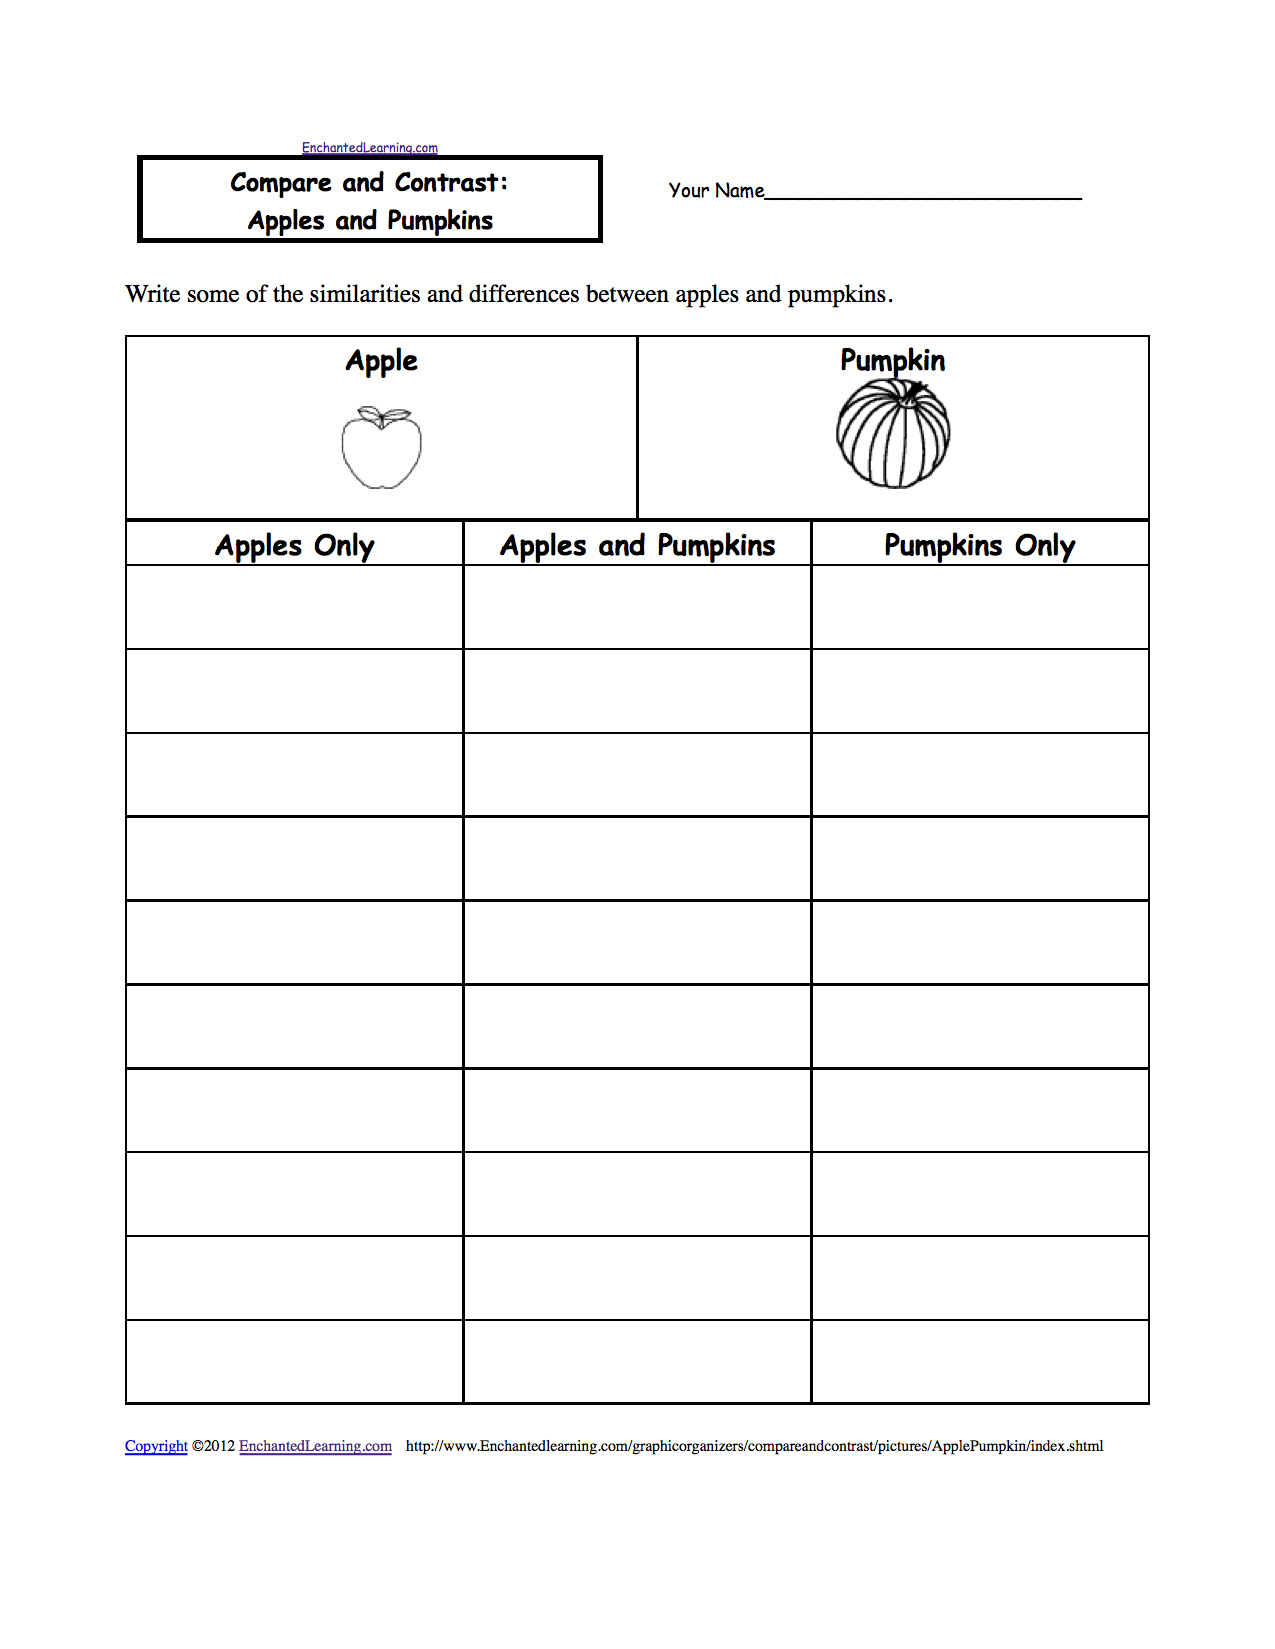 Compare And Contrast Worksheets To Print Enchantedlearning